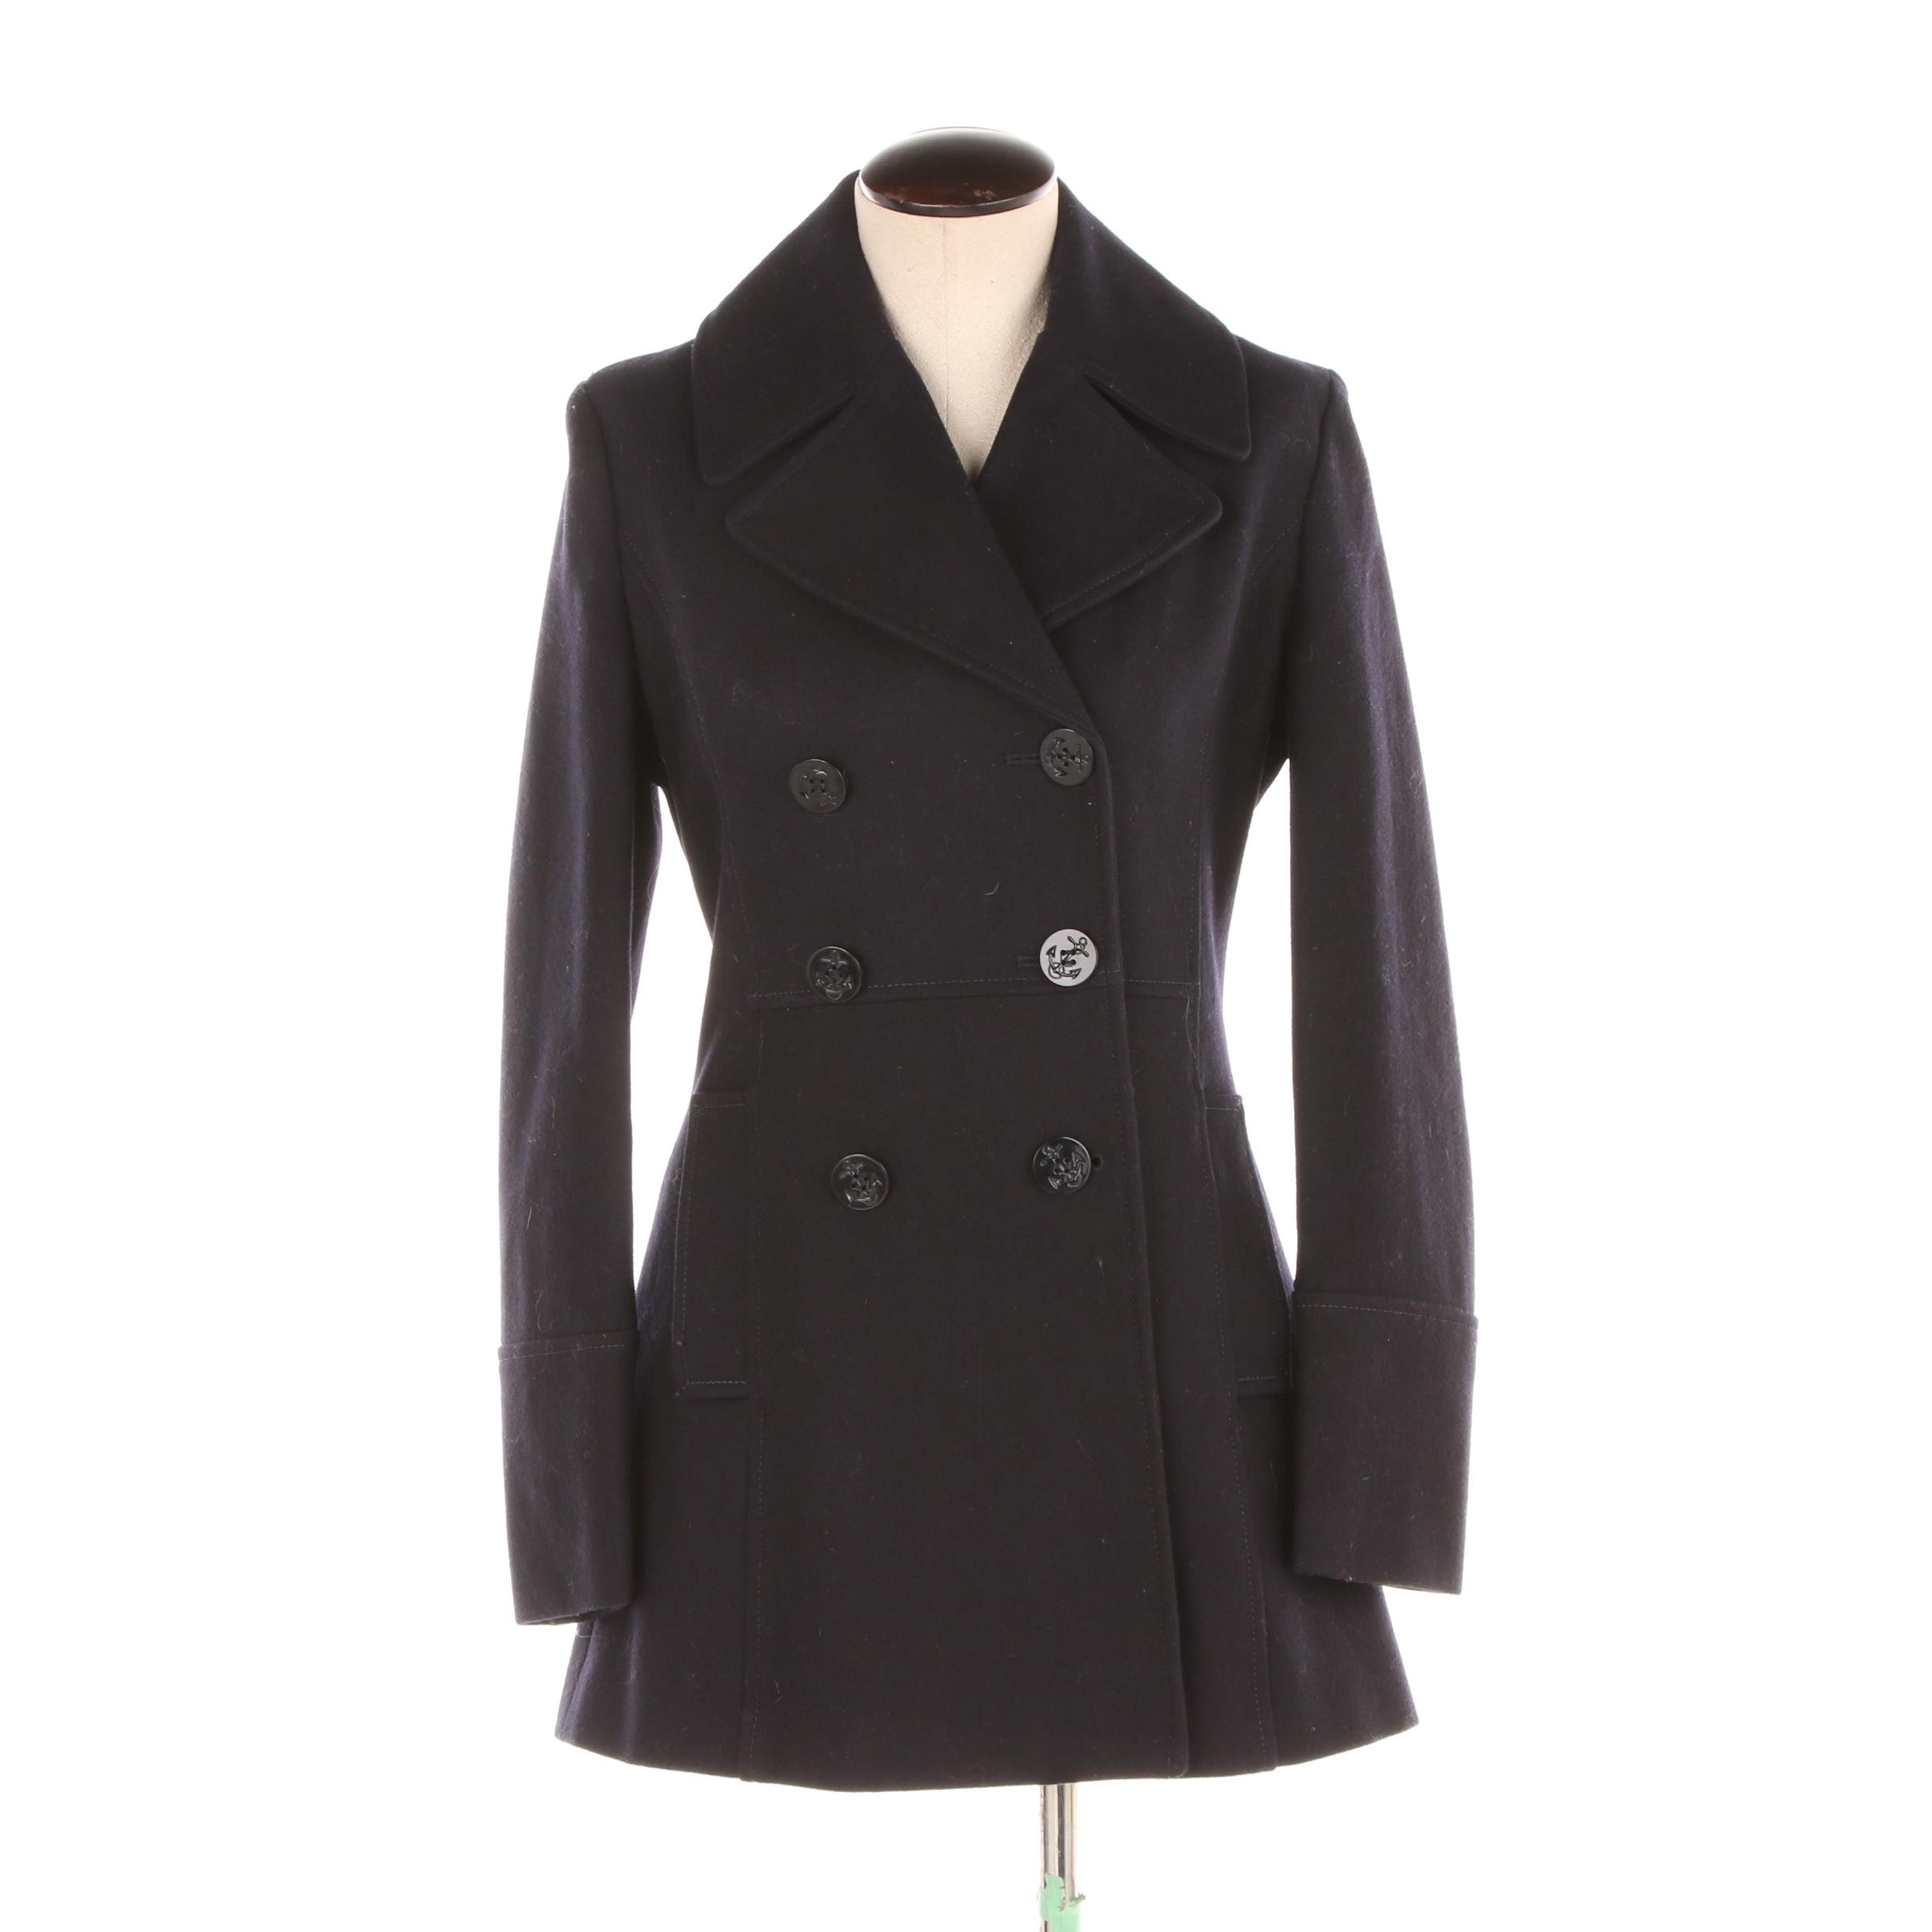 Women's Vineyard Vines Navy Wool Blend Double-Breasted Peacoat